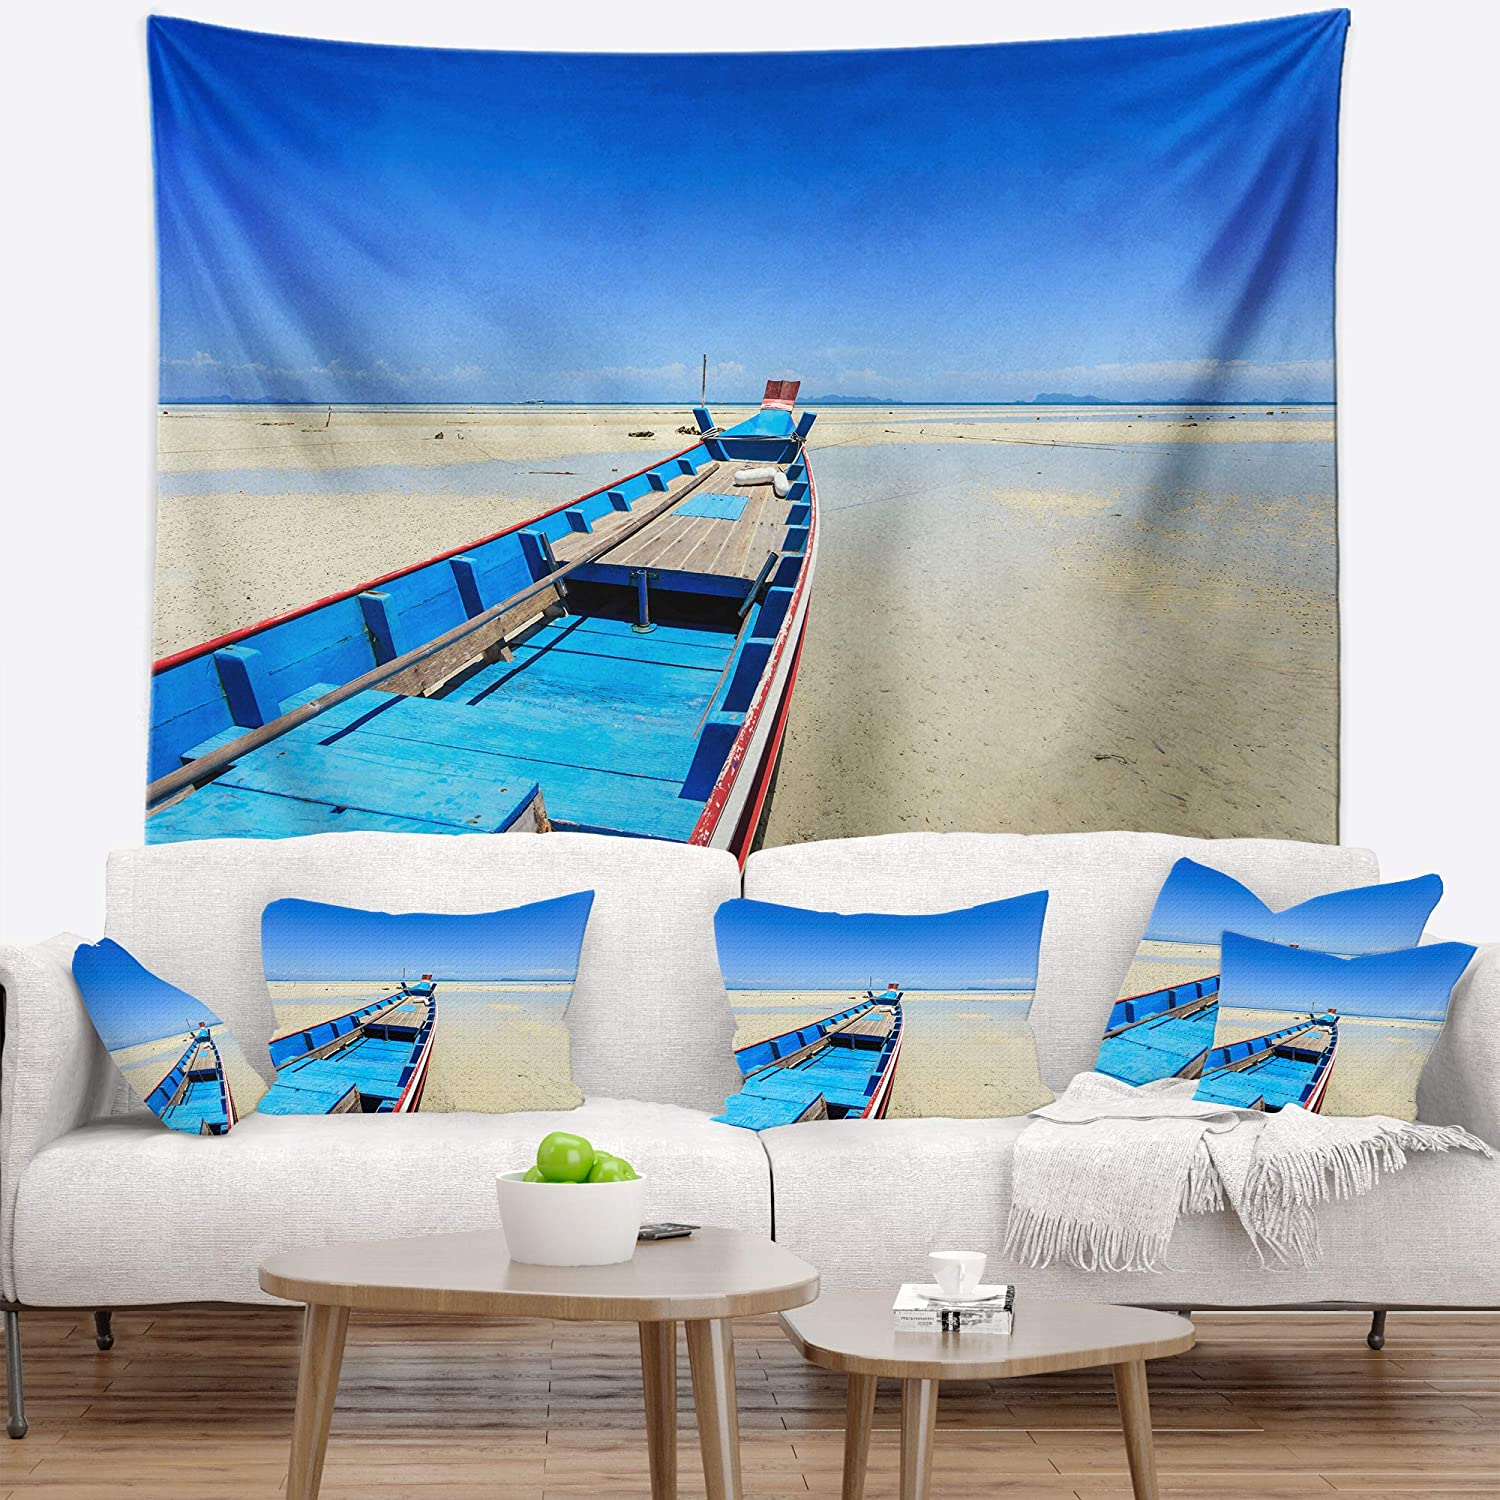 60 in in Designart TAP14724-60-50  Long Tail Boat Stand at The Beach Seashore Blanket D/écor Art for Home and Office Wall Tapestry Large x 50 in